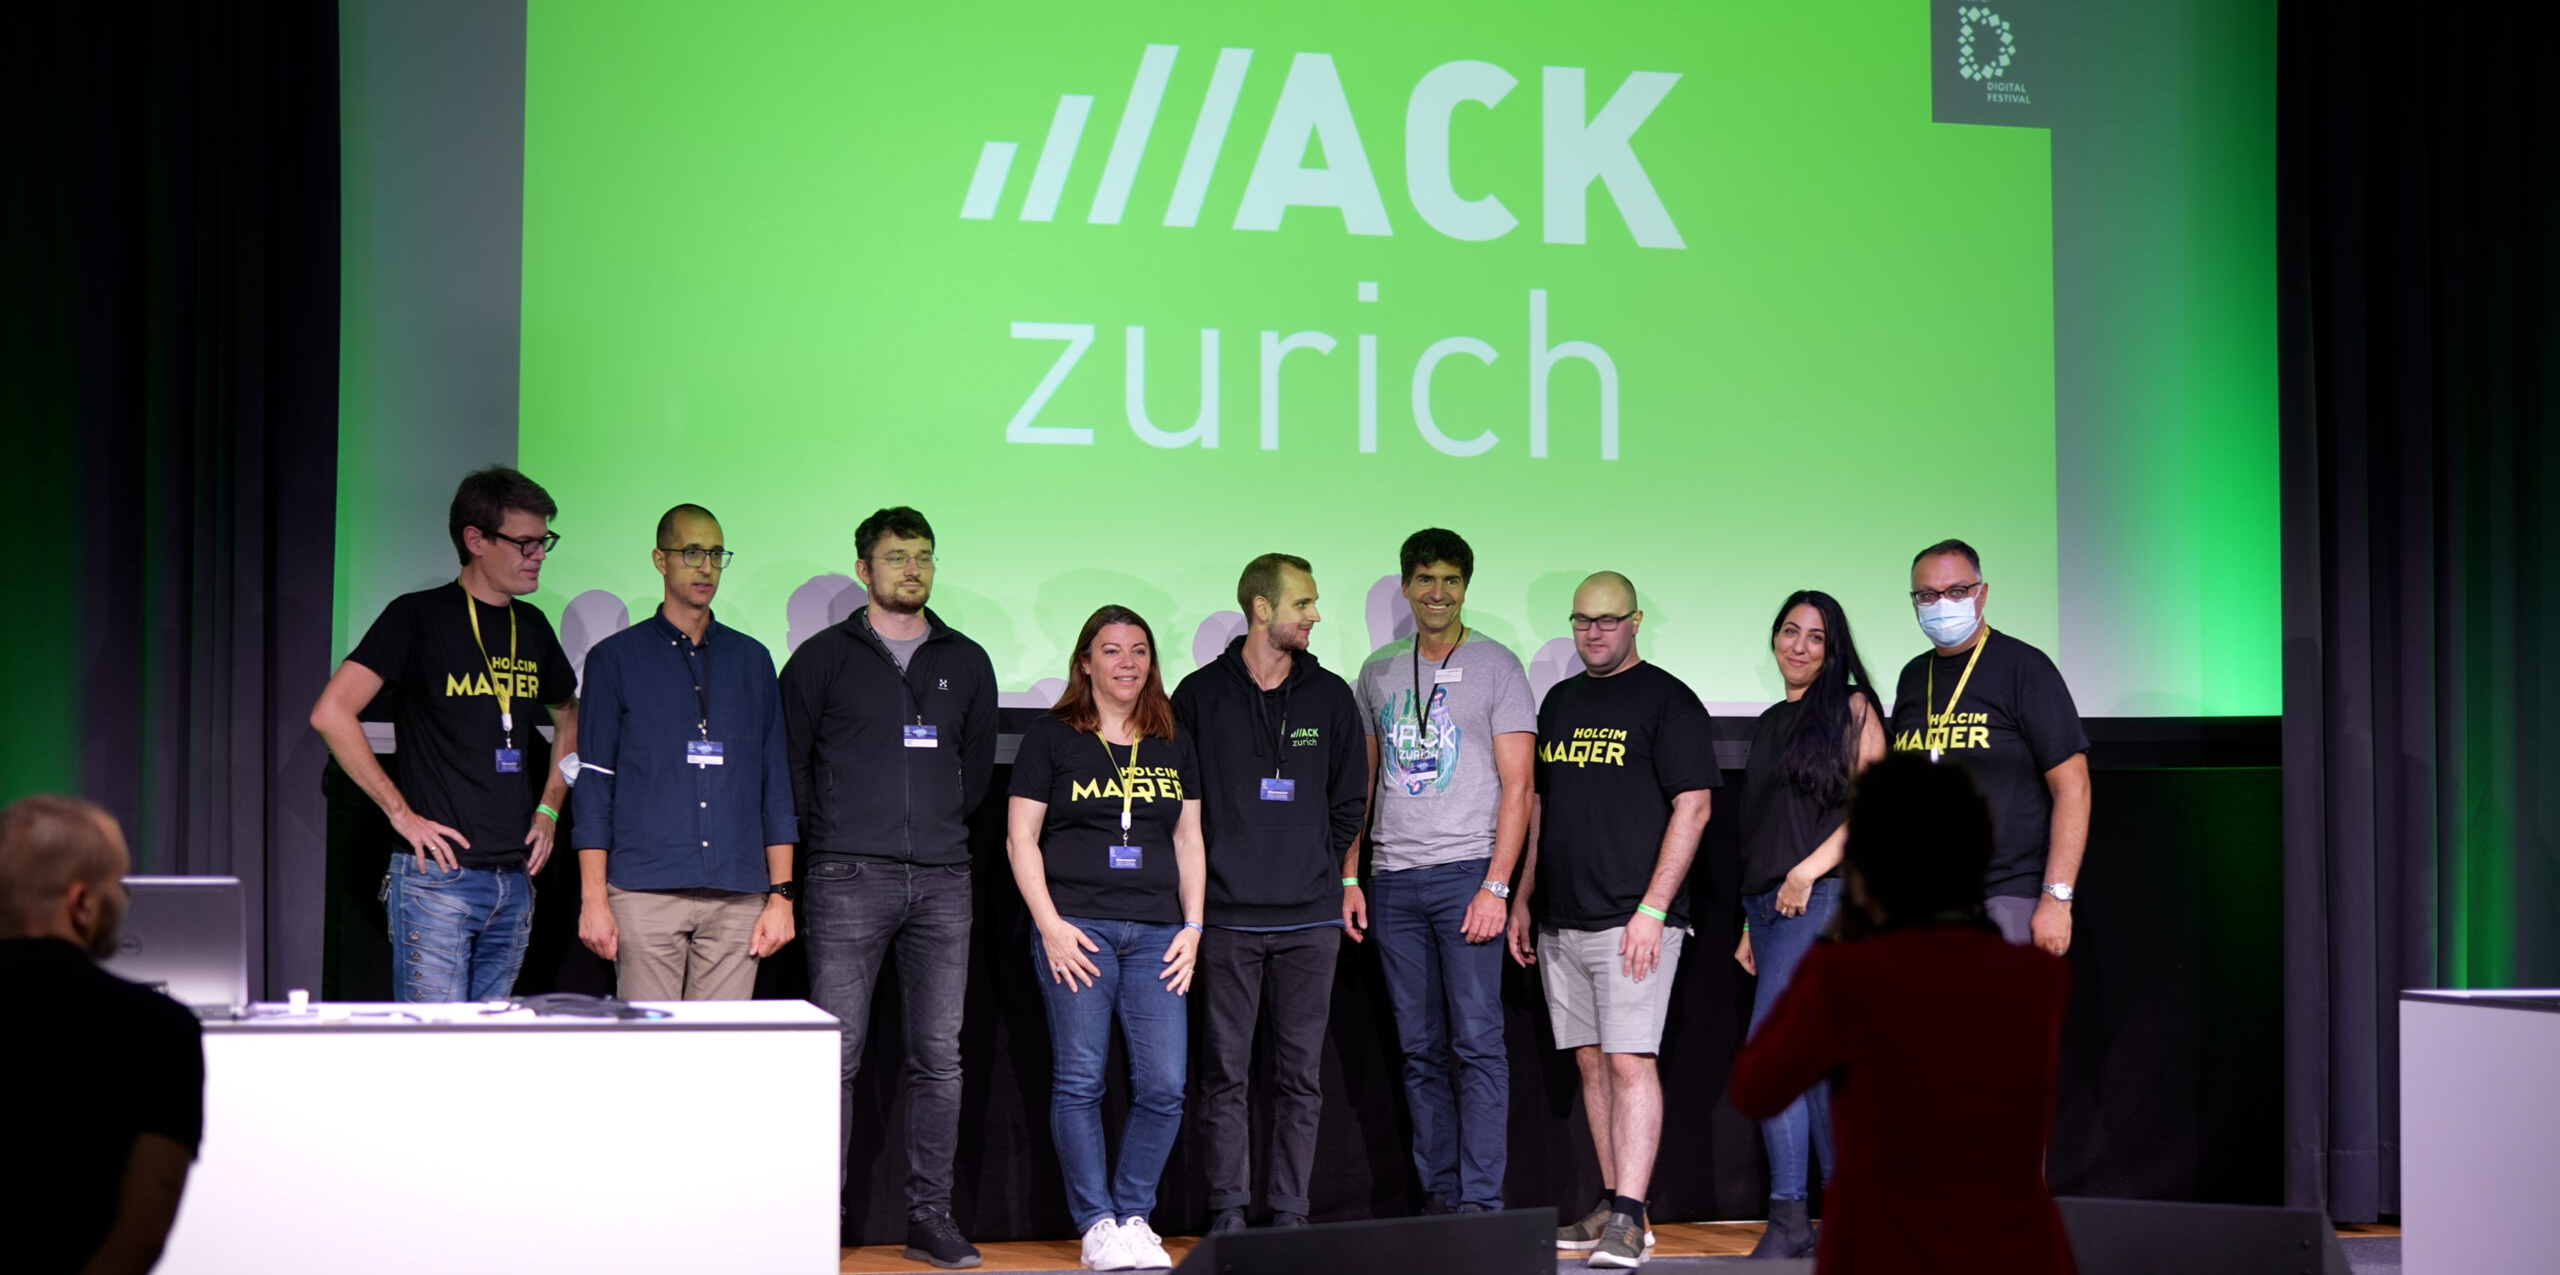 Holcim MAQER invites the open innovation ecosystem to solve construction 'chaos' at HackZurich